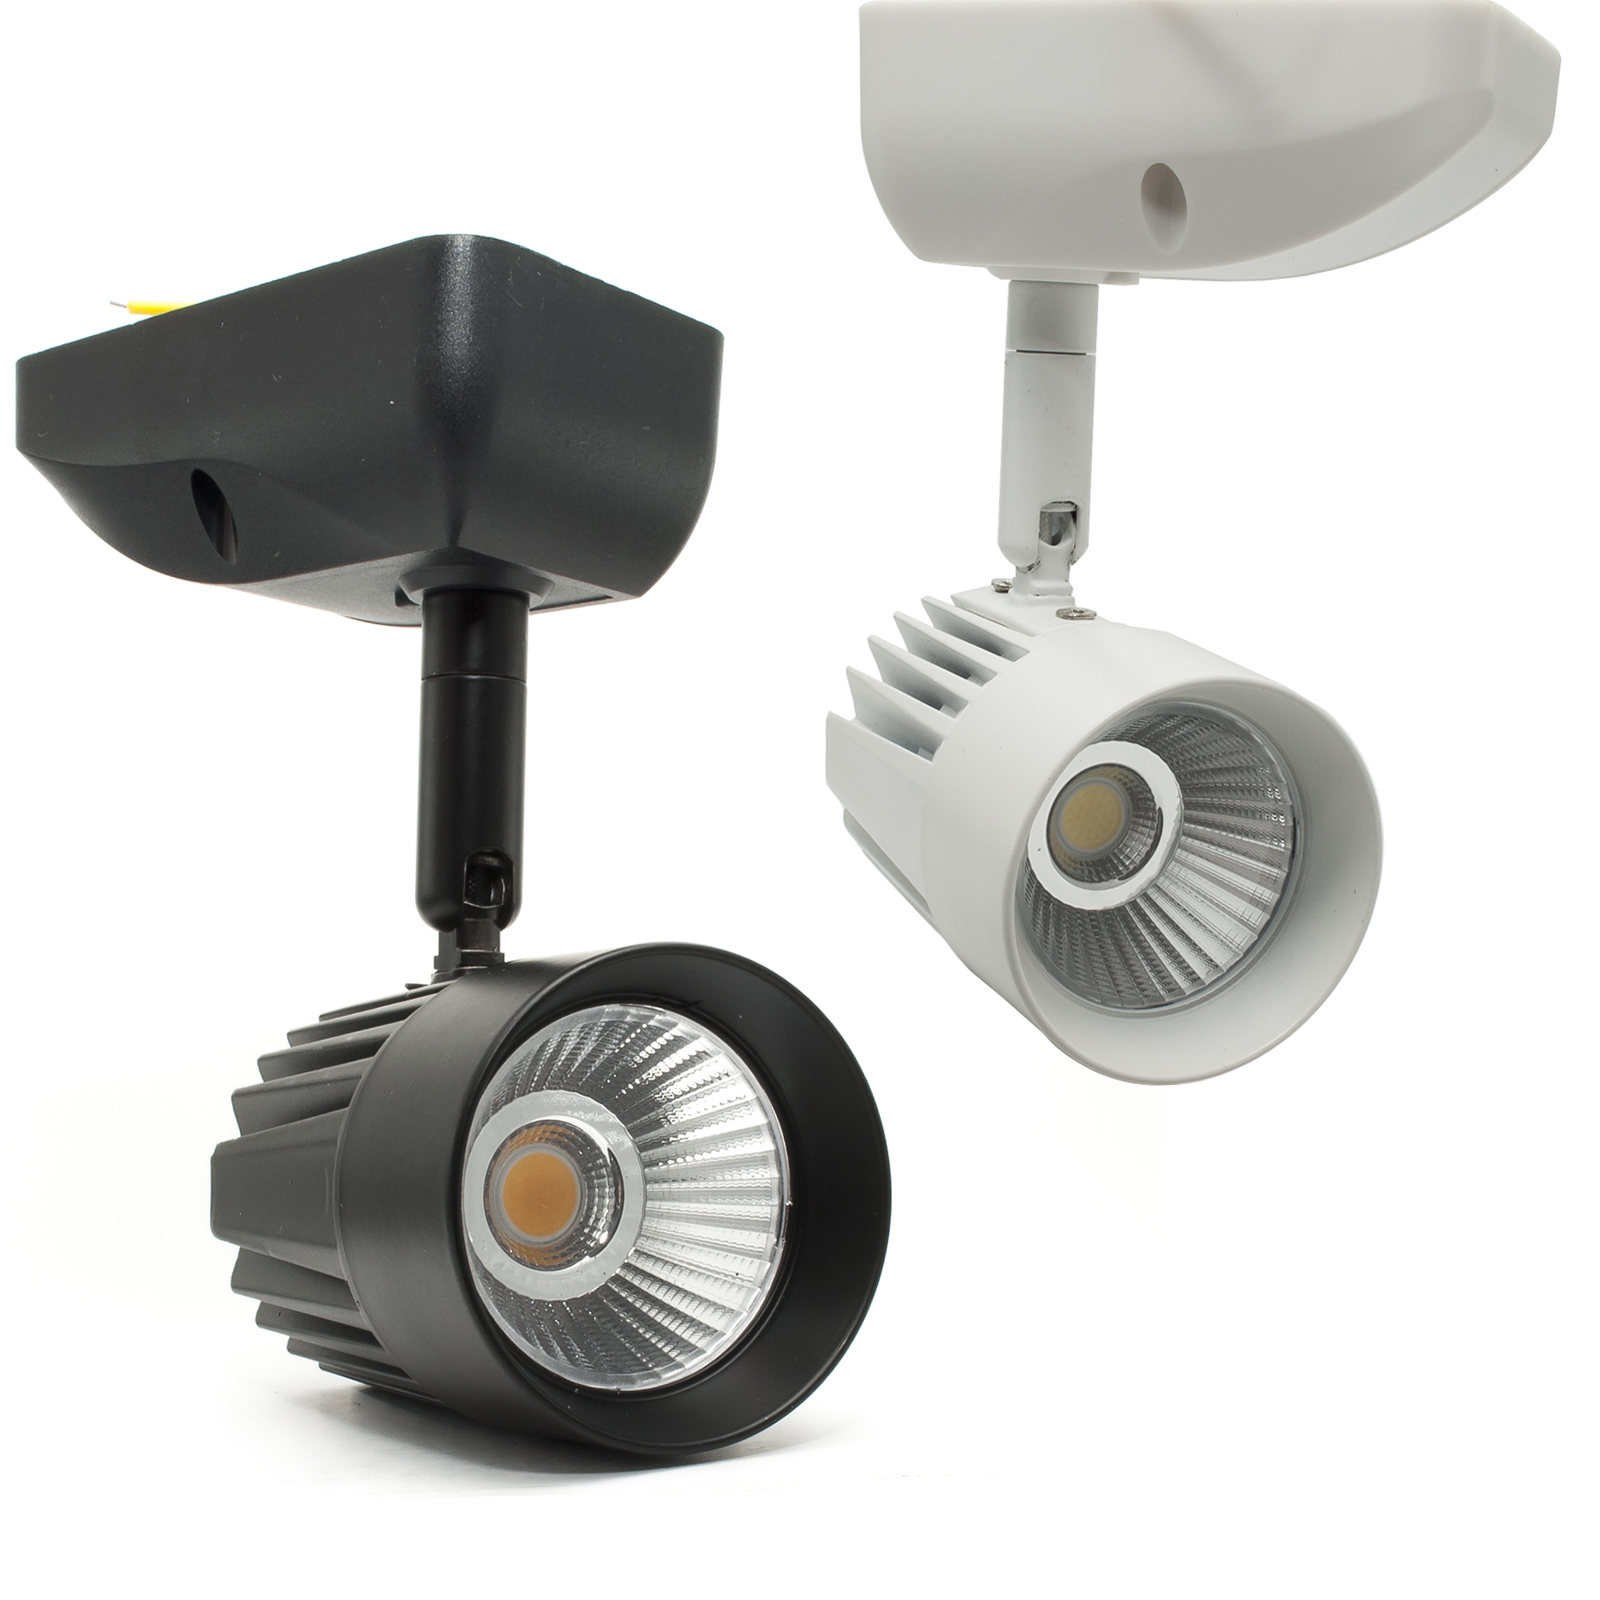 Spotlight LED COB 11W lamp ceiling wall wall directed light shop-windows, 230V